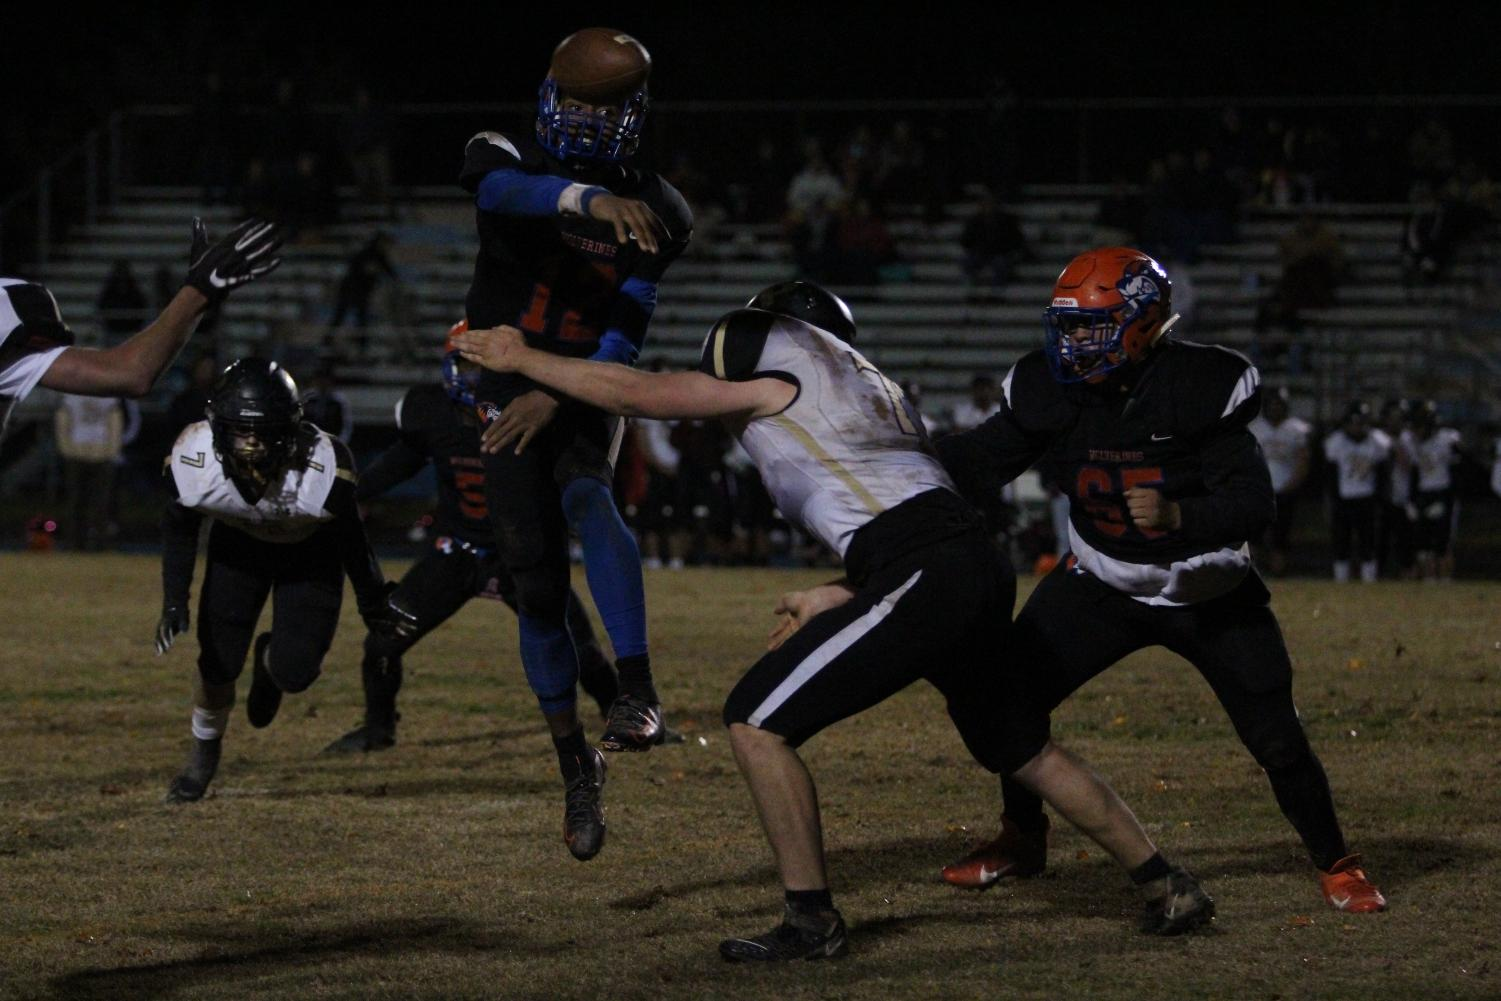 Sophomore Nehemai Cross throws the ball in midair as senior Anthony Santos moves to defend him.